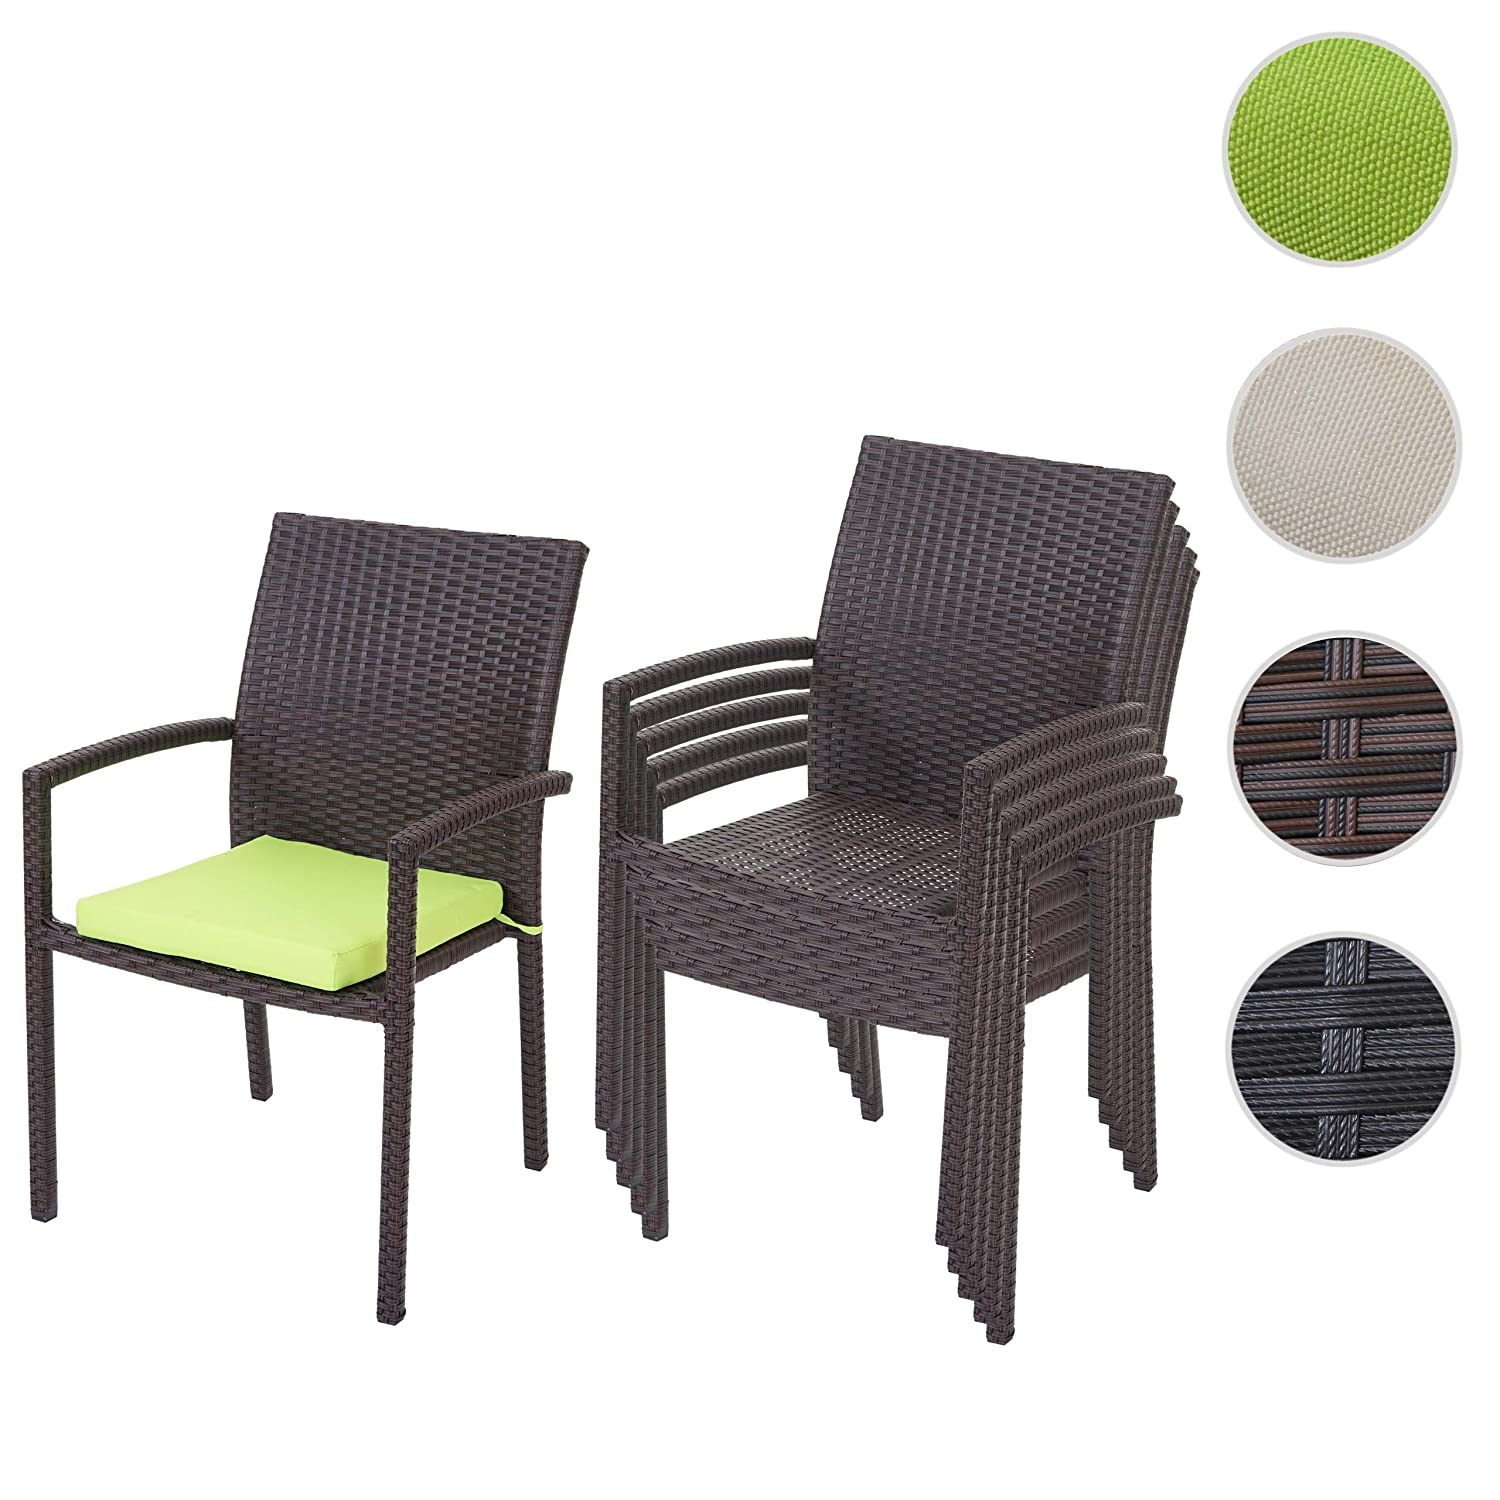 6x poly rattan gartenstuhl cava stapelstuhl inkl sitzkissen braun kissen gr n bestellen. Black Bedroom Furniture Sets. Home Design Ideas